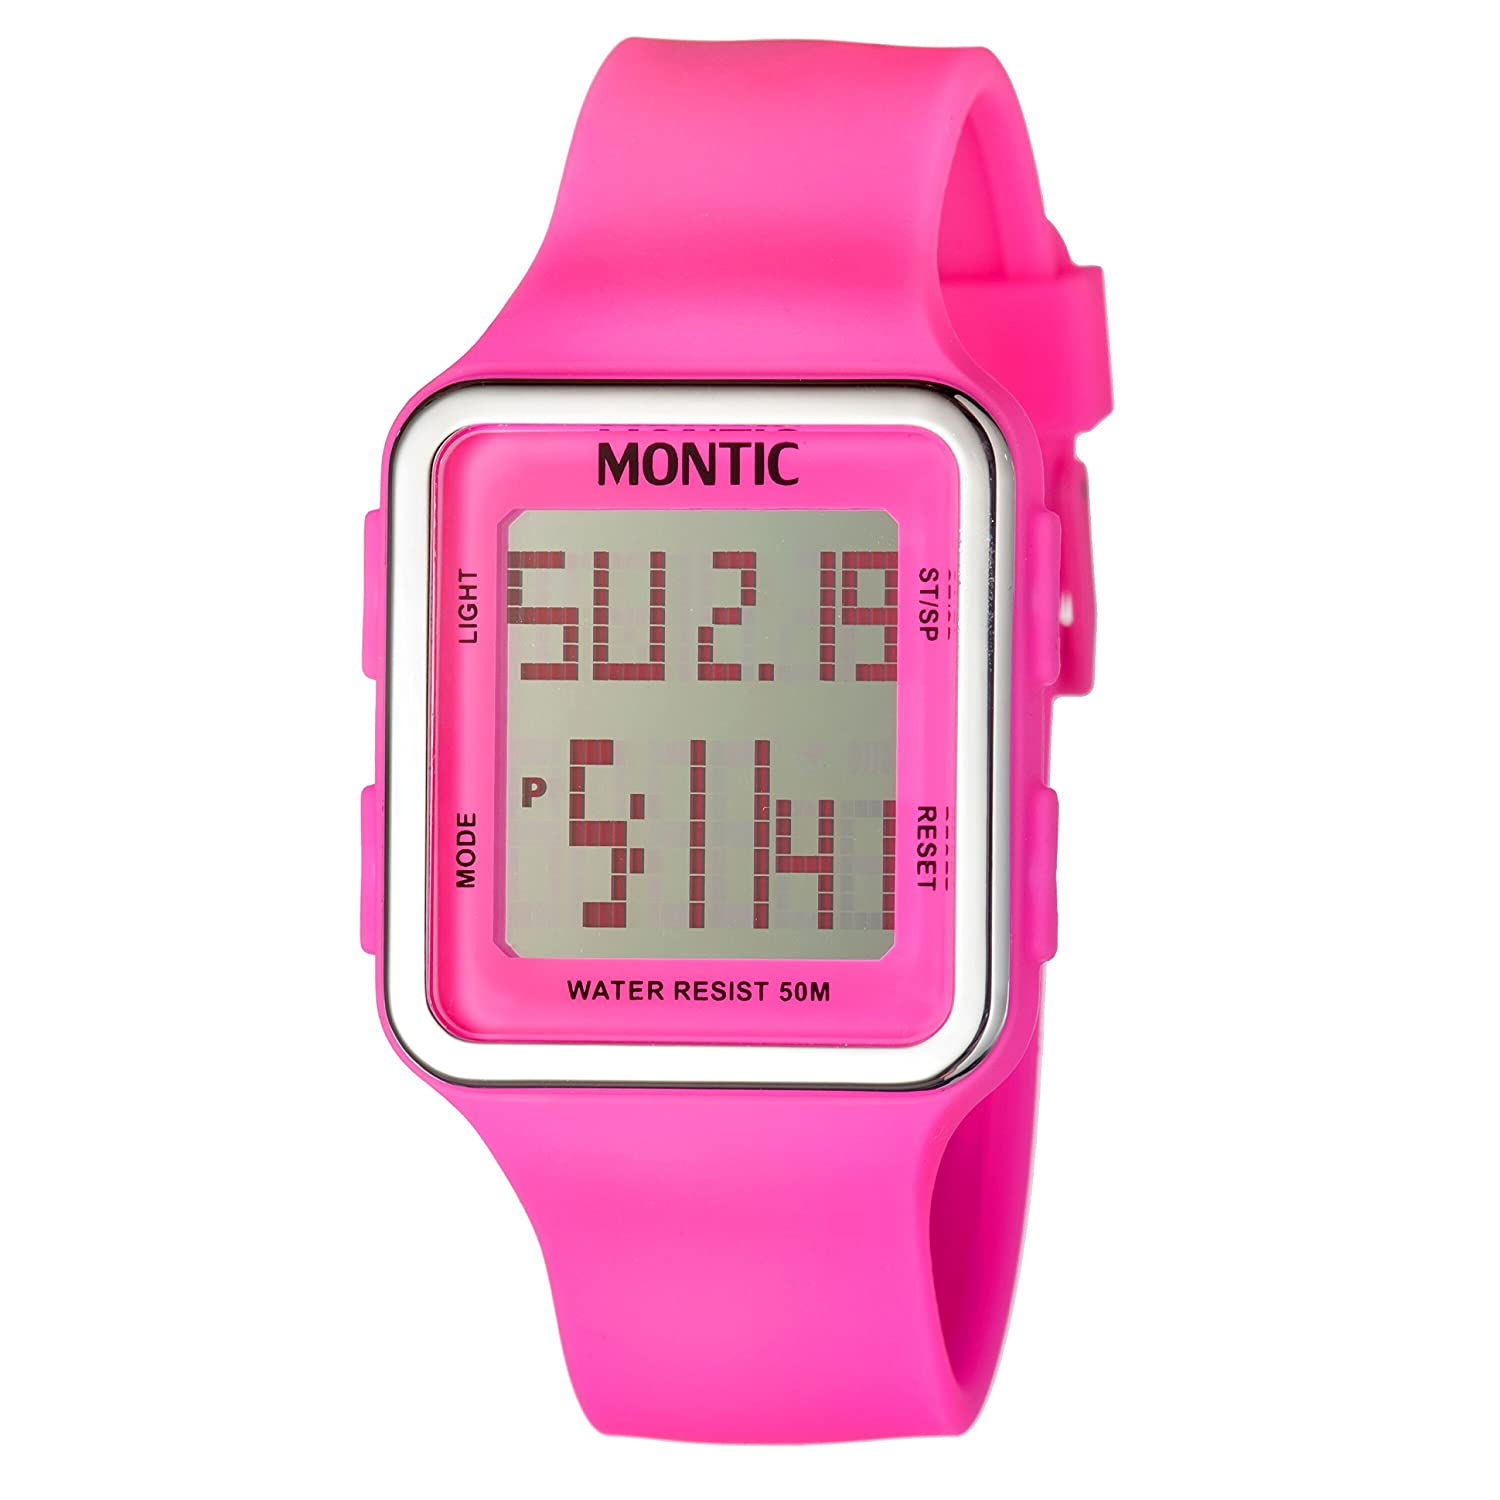 Amazon.com: Montic Womens Multifunction Water Resistant ...